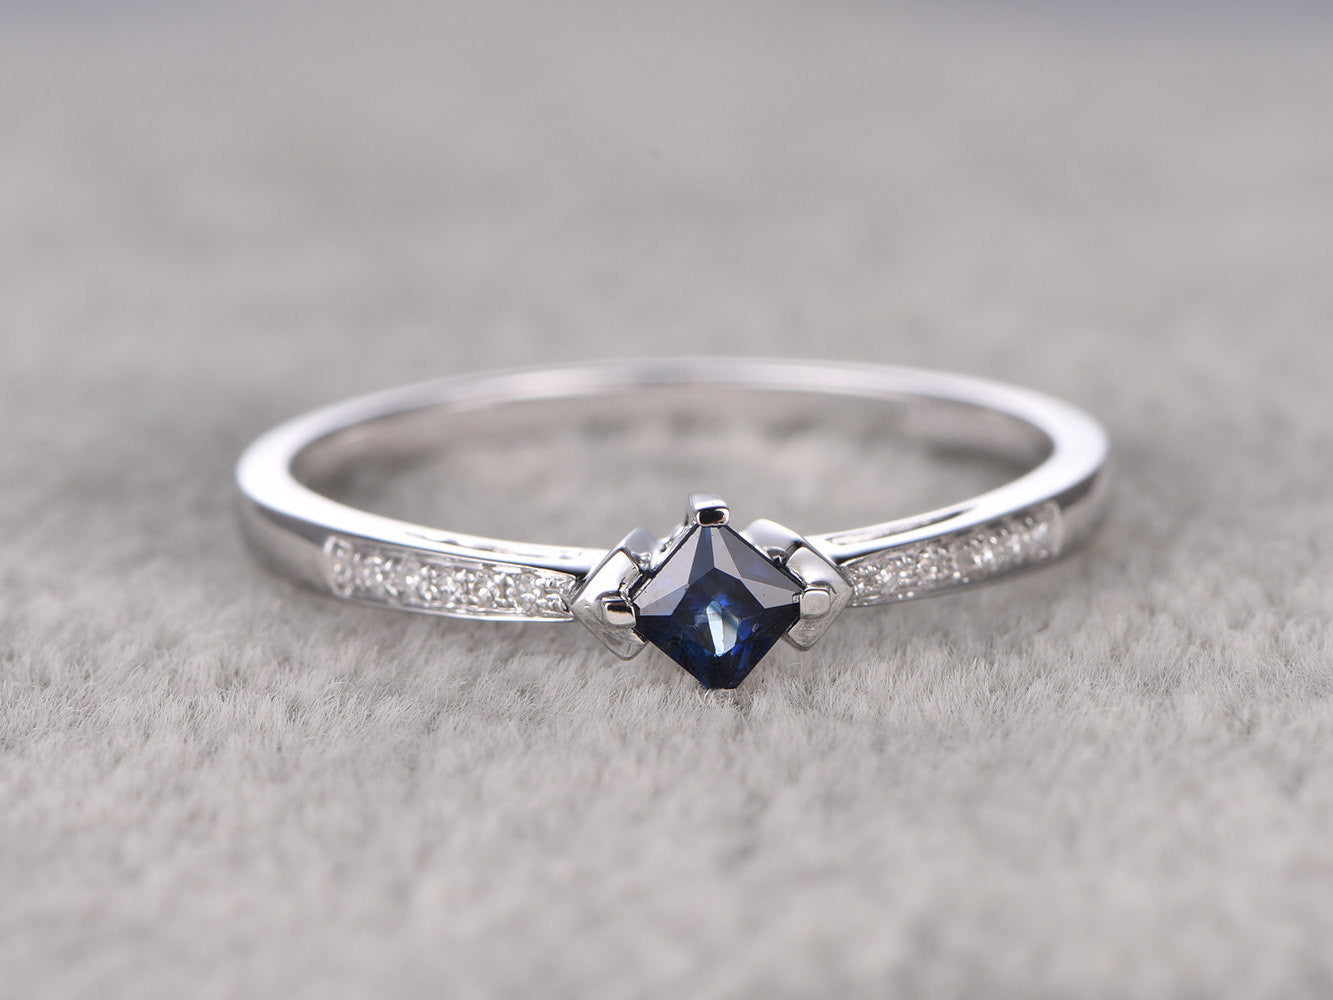 0.35ctw Natural Sapphire Engagement ring,Diamond wedding band,14K White Gold